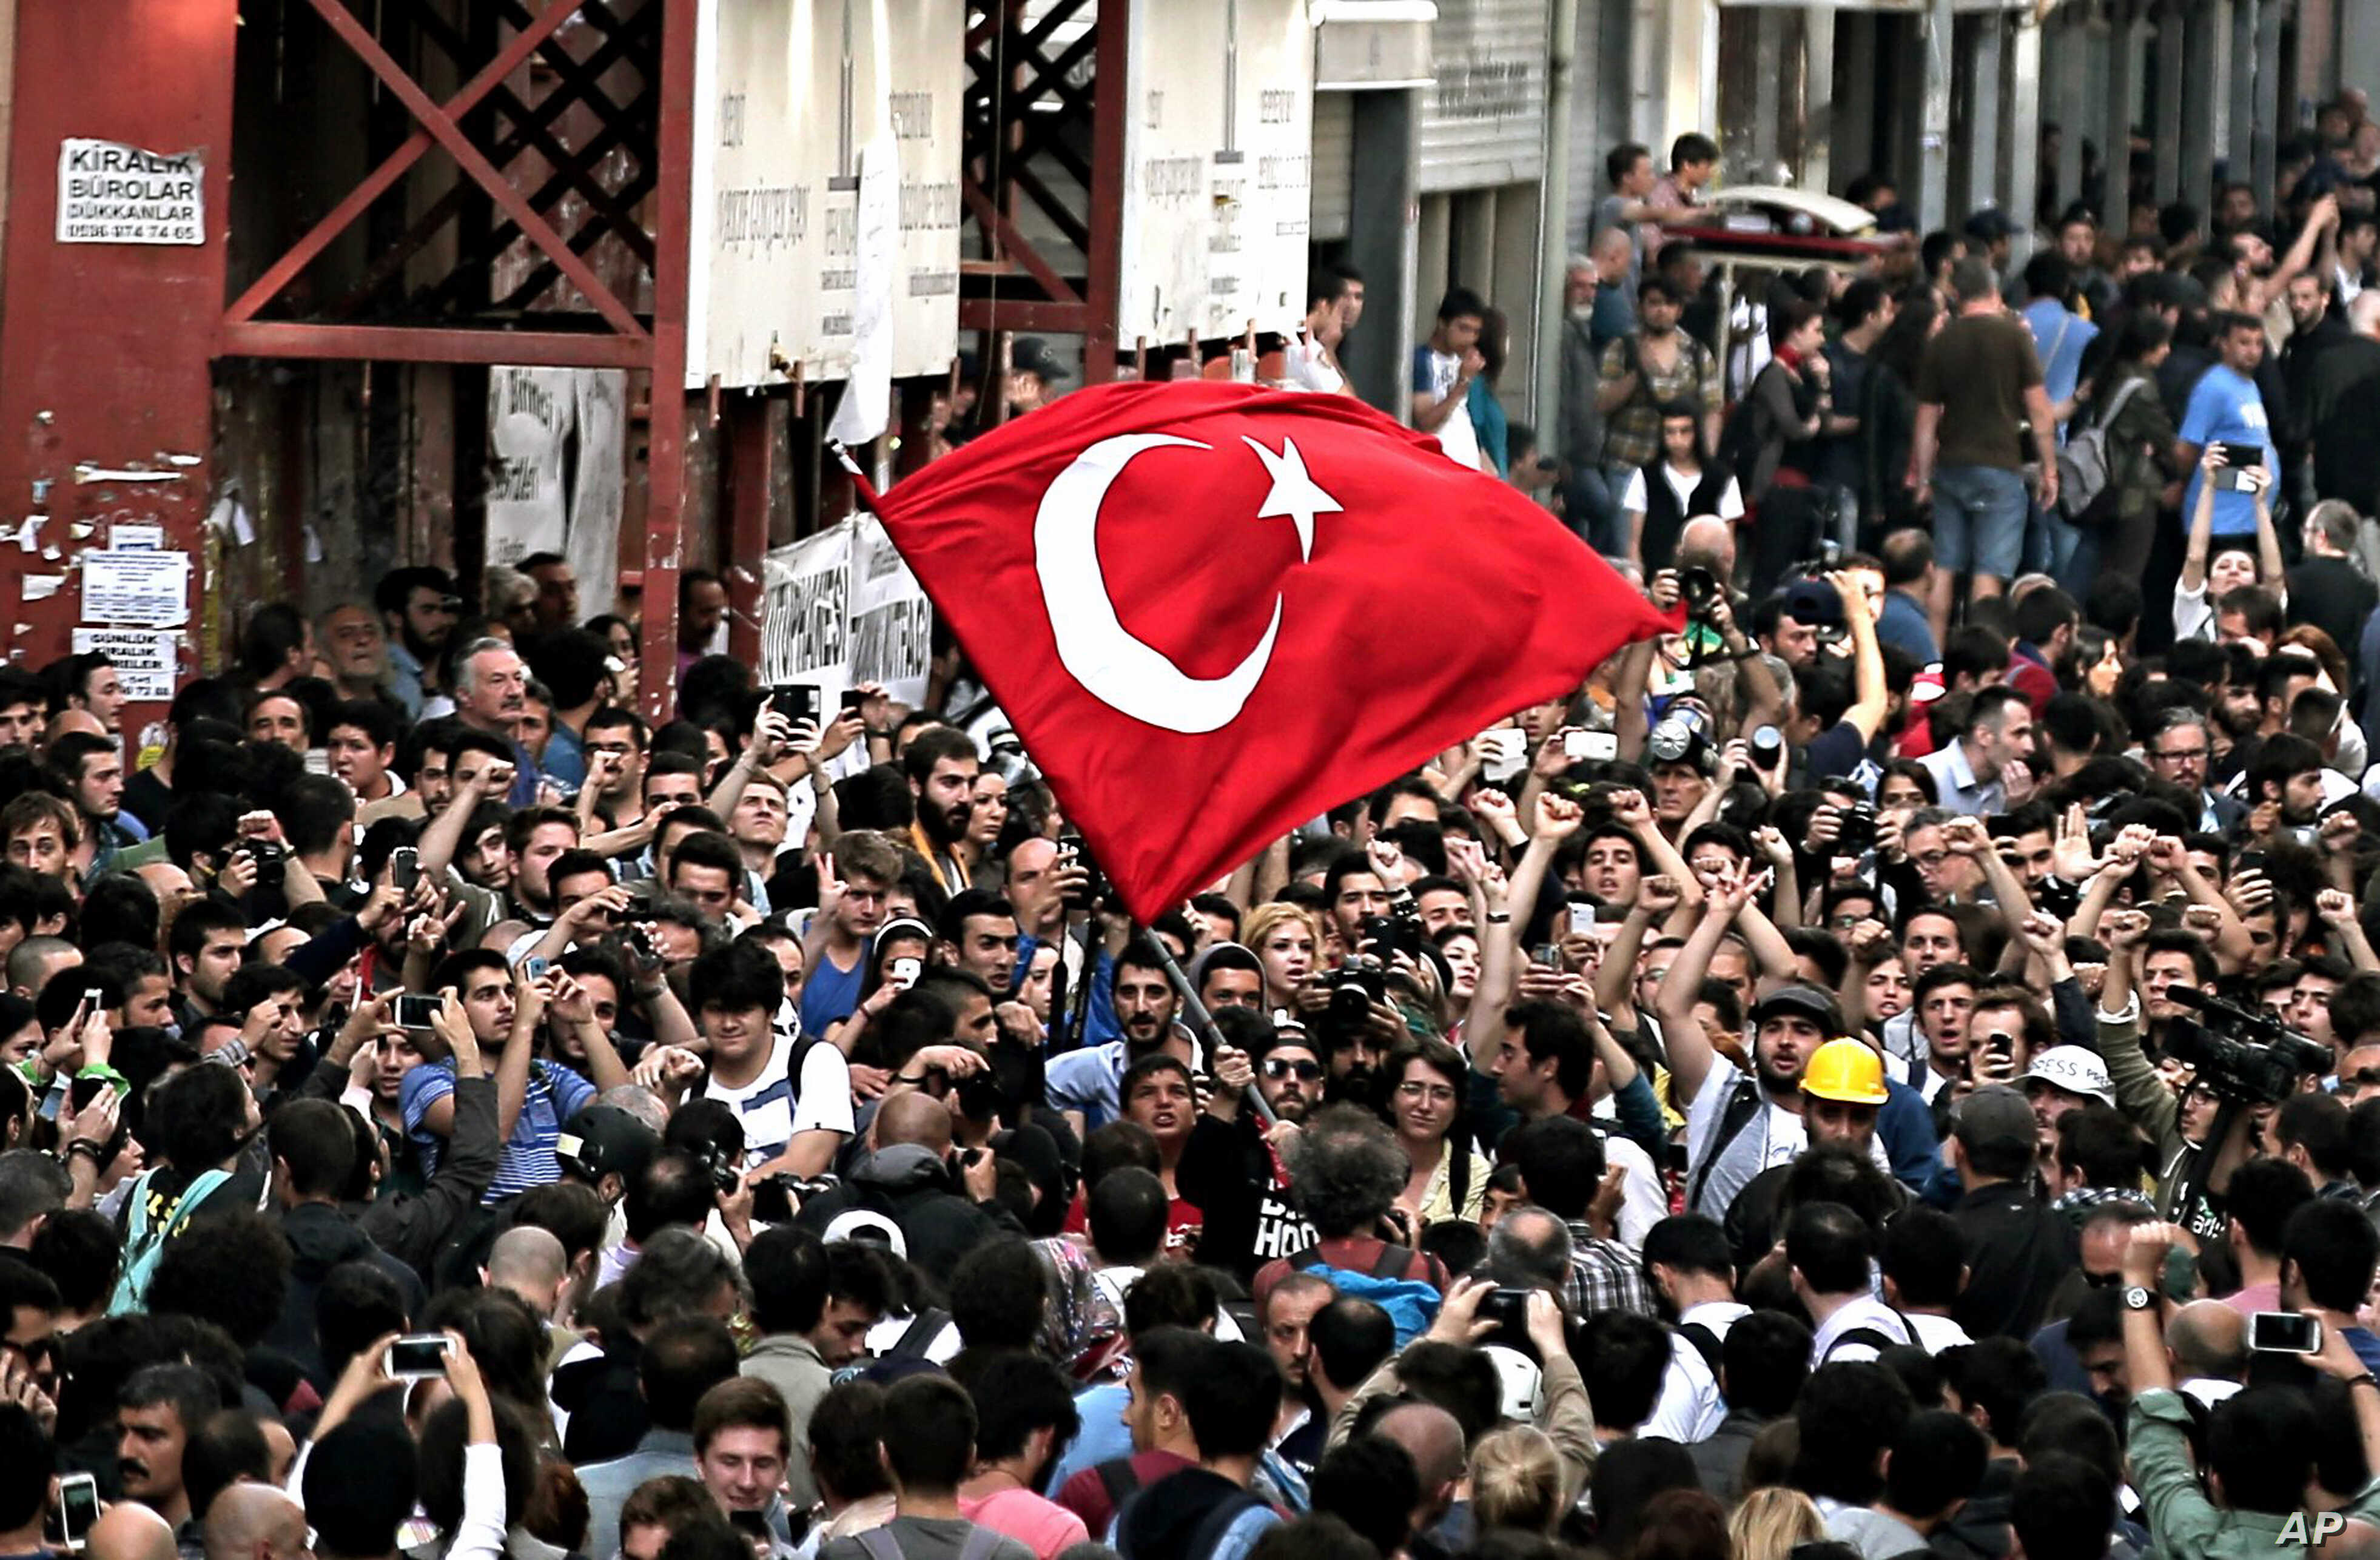 FILE - People try to march after security members closed the city's landmark Taksim Square and Gezi Park, on the first anniversary of the Gezi protests in Istanbul, Turkey, May 31, 2014. A government backed redevelopment plan for Gezi Park in Istanbu...